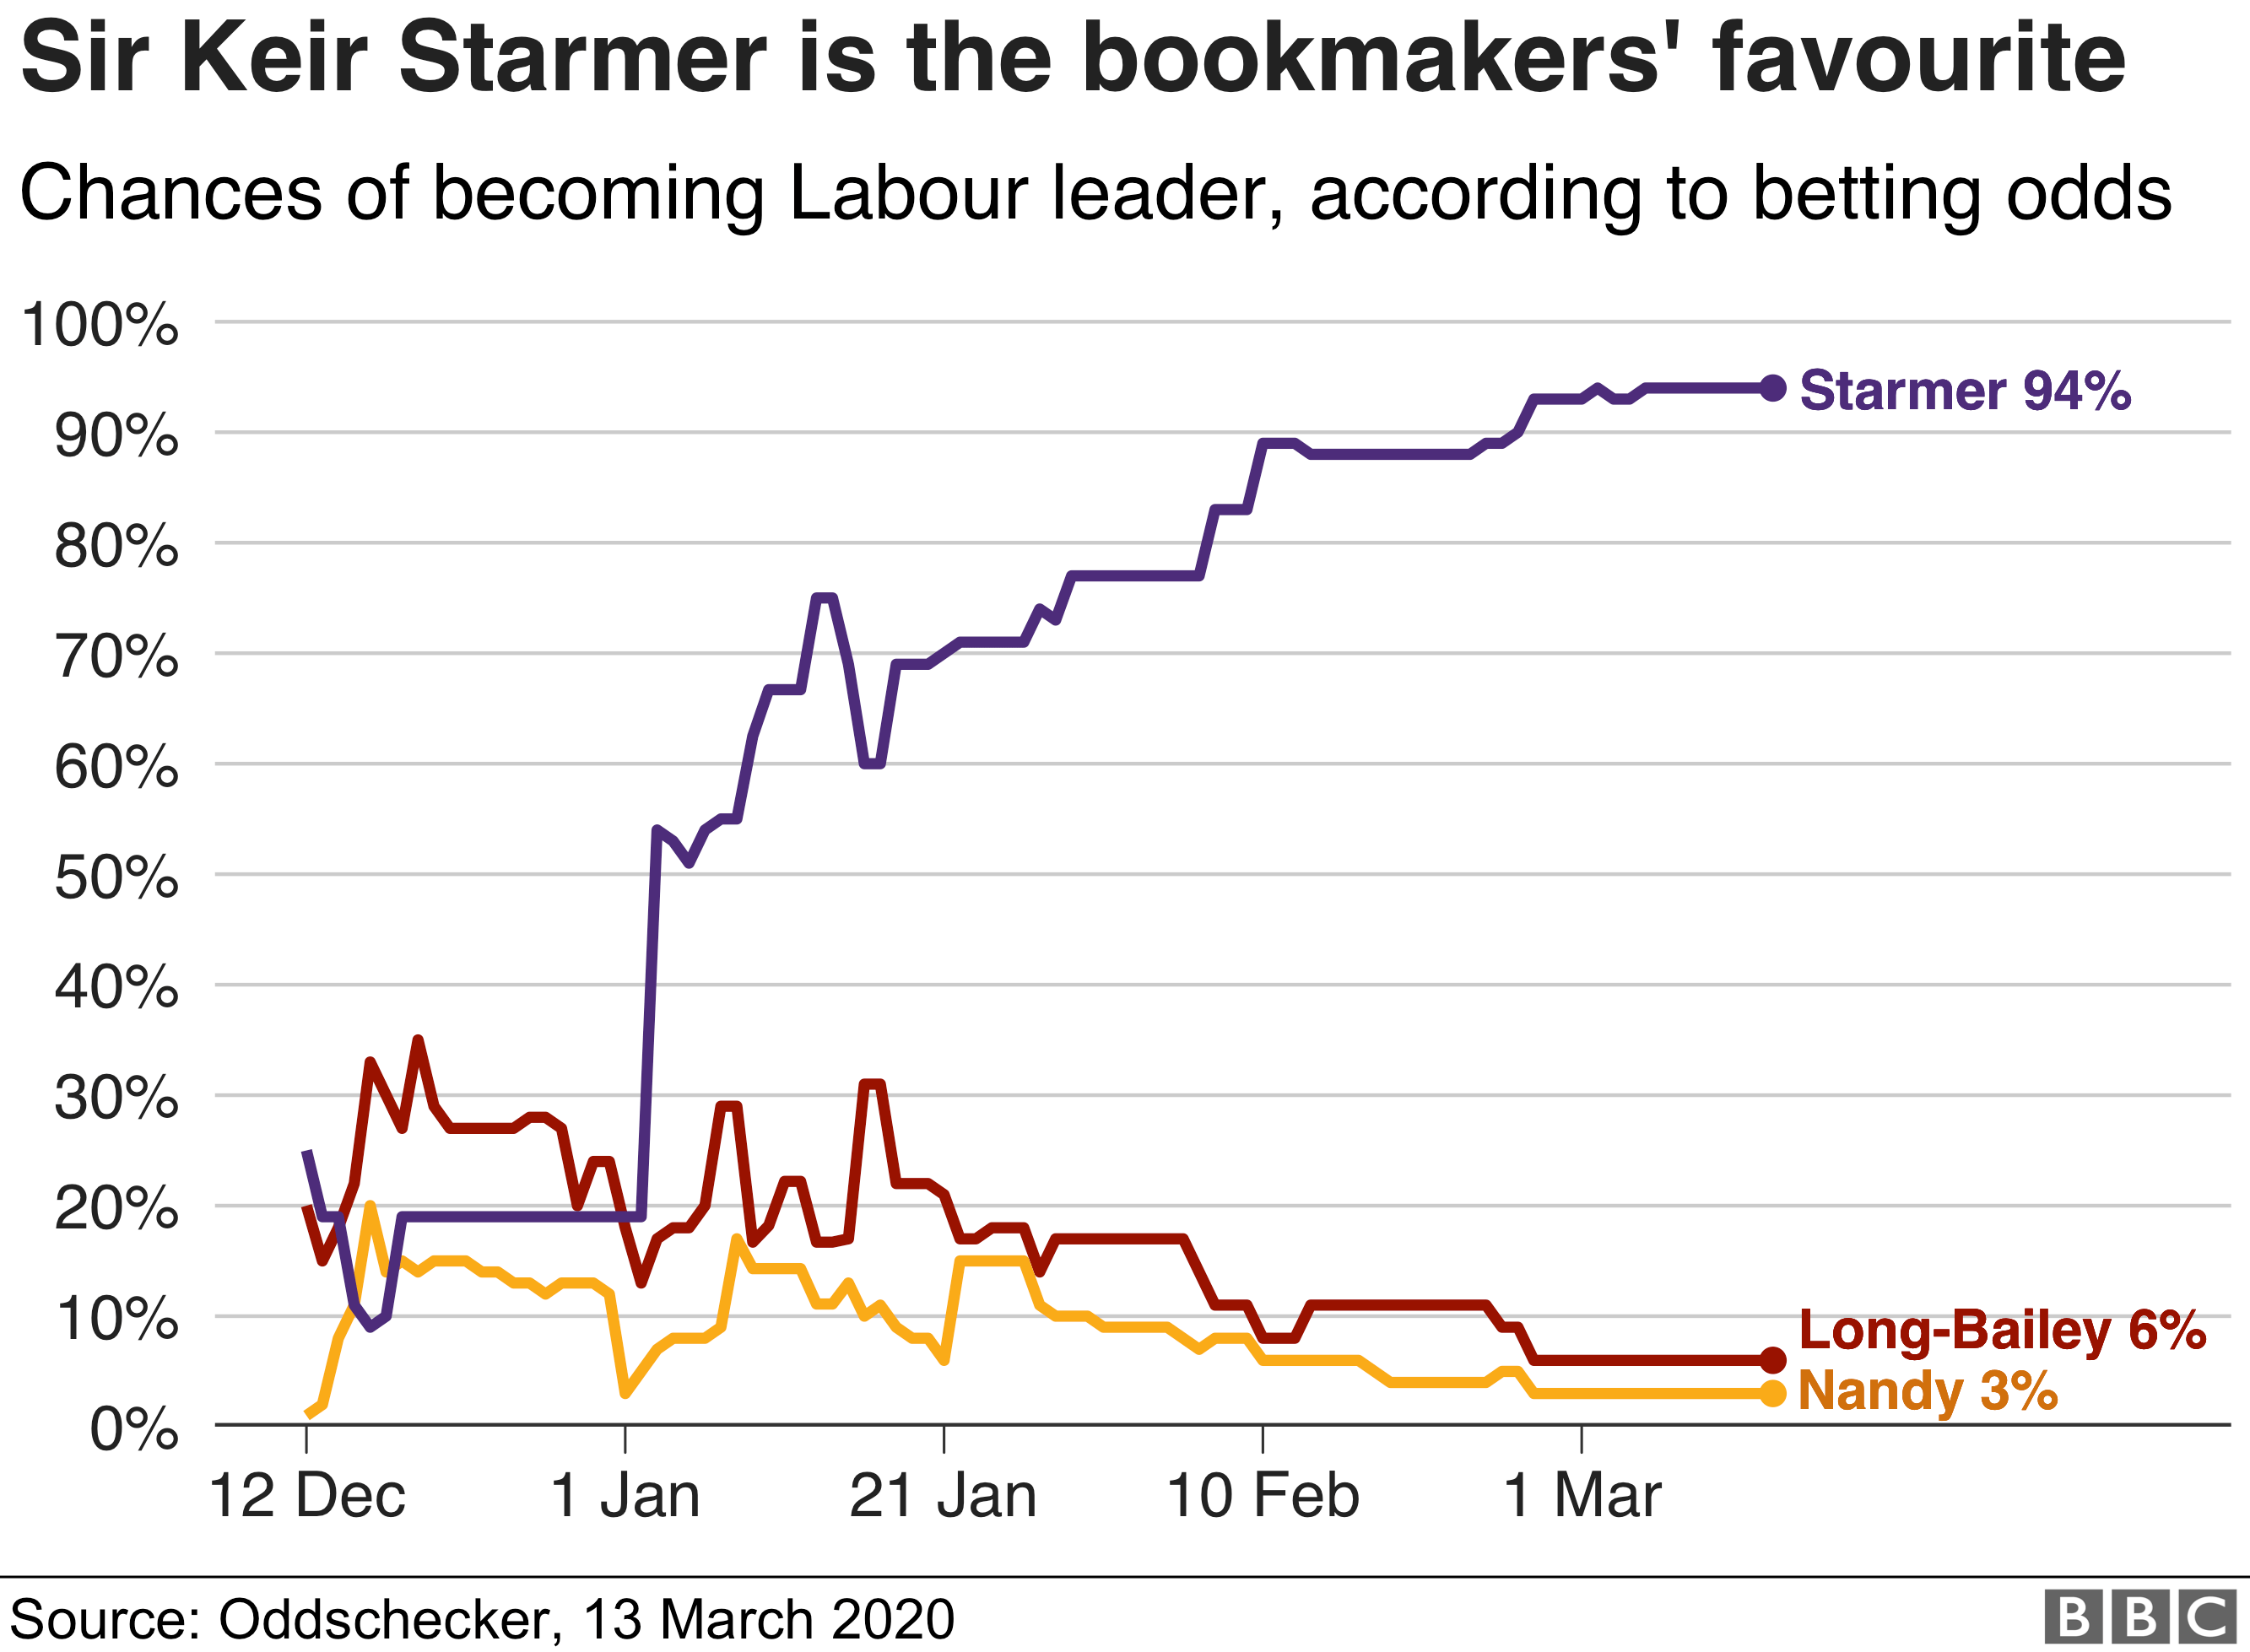 Chart showing bookmakers' odds on the candidates, 13 March